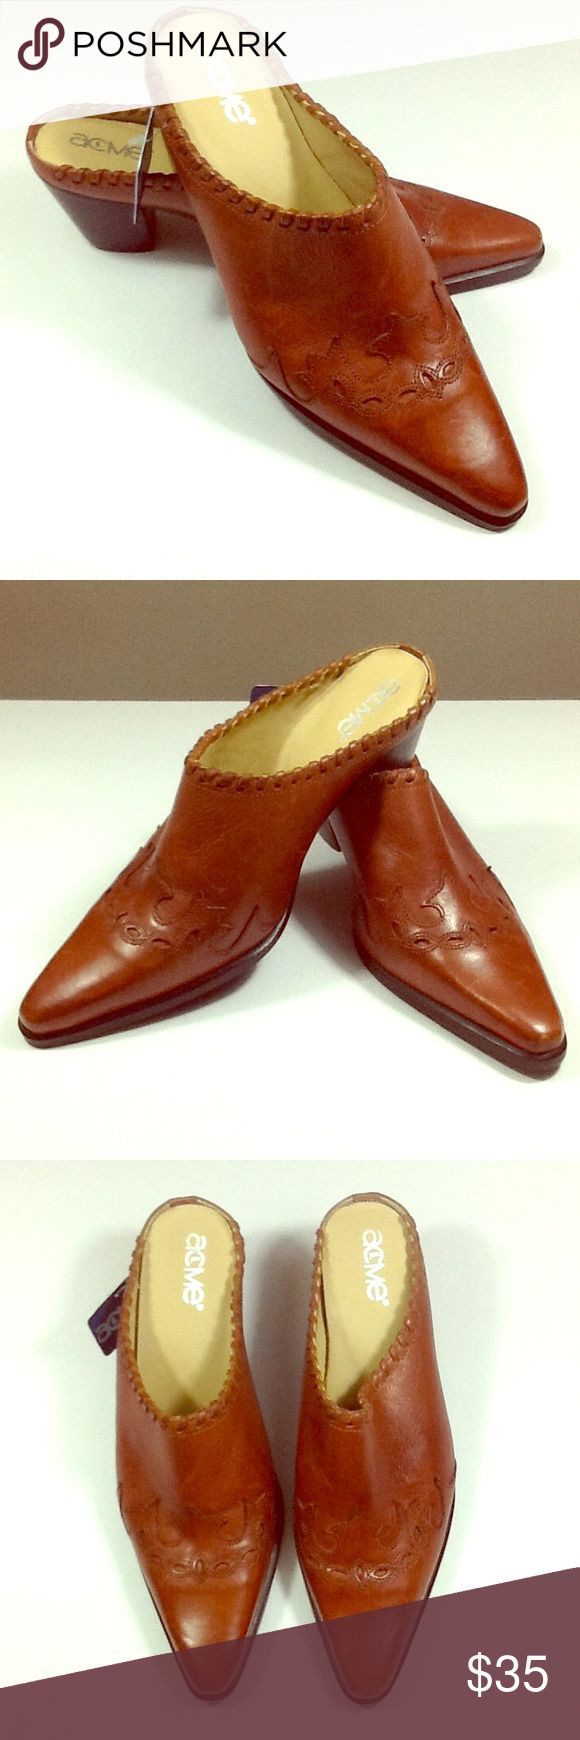 New Acme women's cowboy boot mules New with tags. Gorgeous spicy brown leather with scrolling details. Pointed toe, wrapped at vamp. Great with jeans! Acme Shoes Mules & Clogs